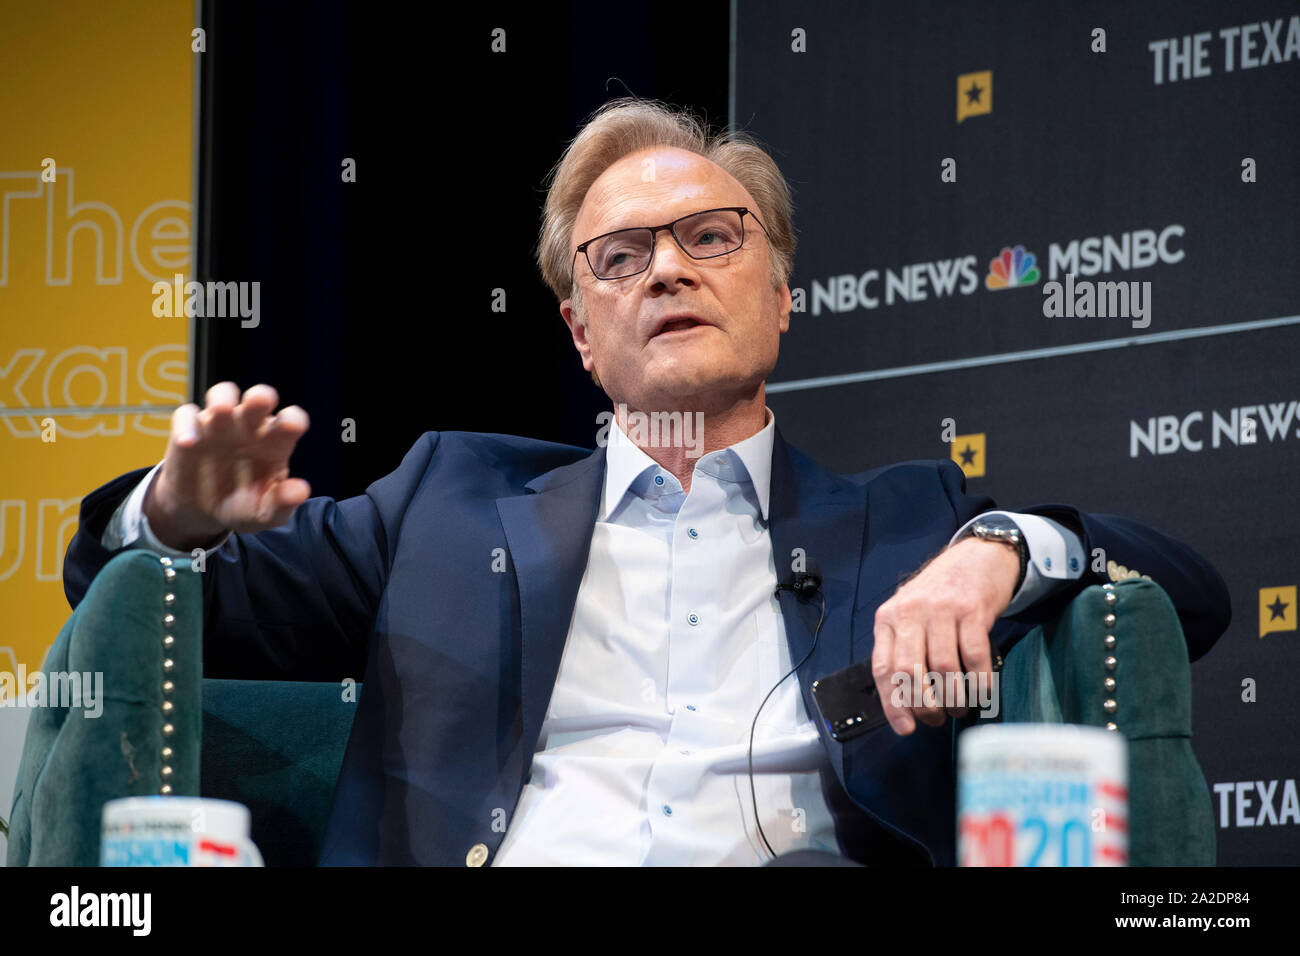 MSNBC political commentator Lawrence O'Donnell gestures while interviewing U.S. Sen. Michael Bennet of Colorado during a Texas Tribune Festival session. Stock Photo